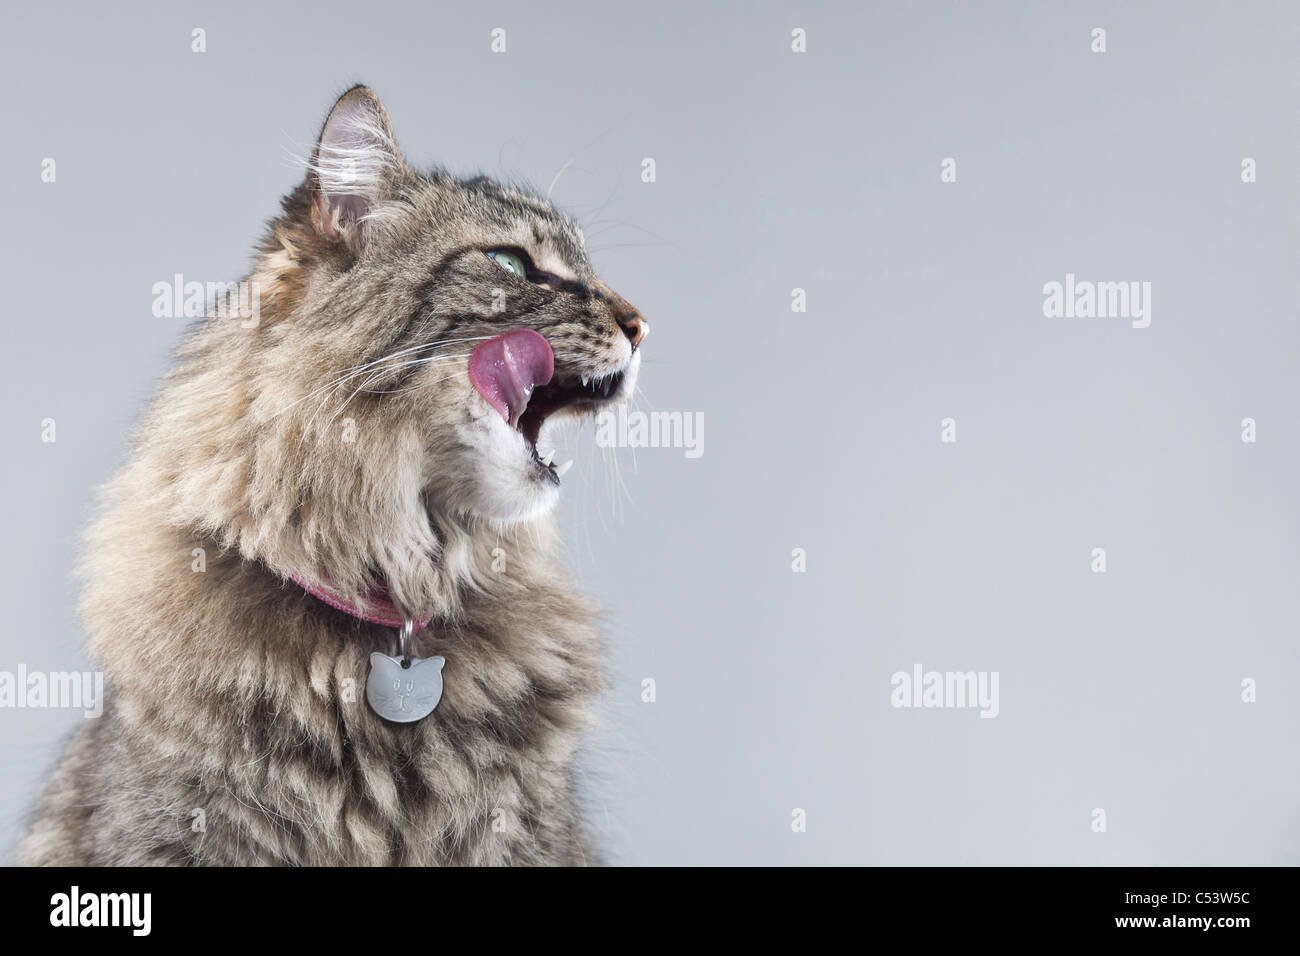 Tabby cat in profile against a gray background licks her lips, with a pink tongue sticking out. - Stock Image